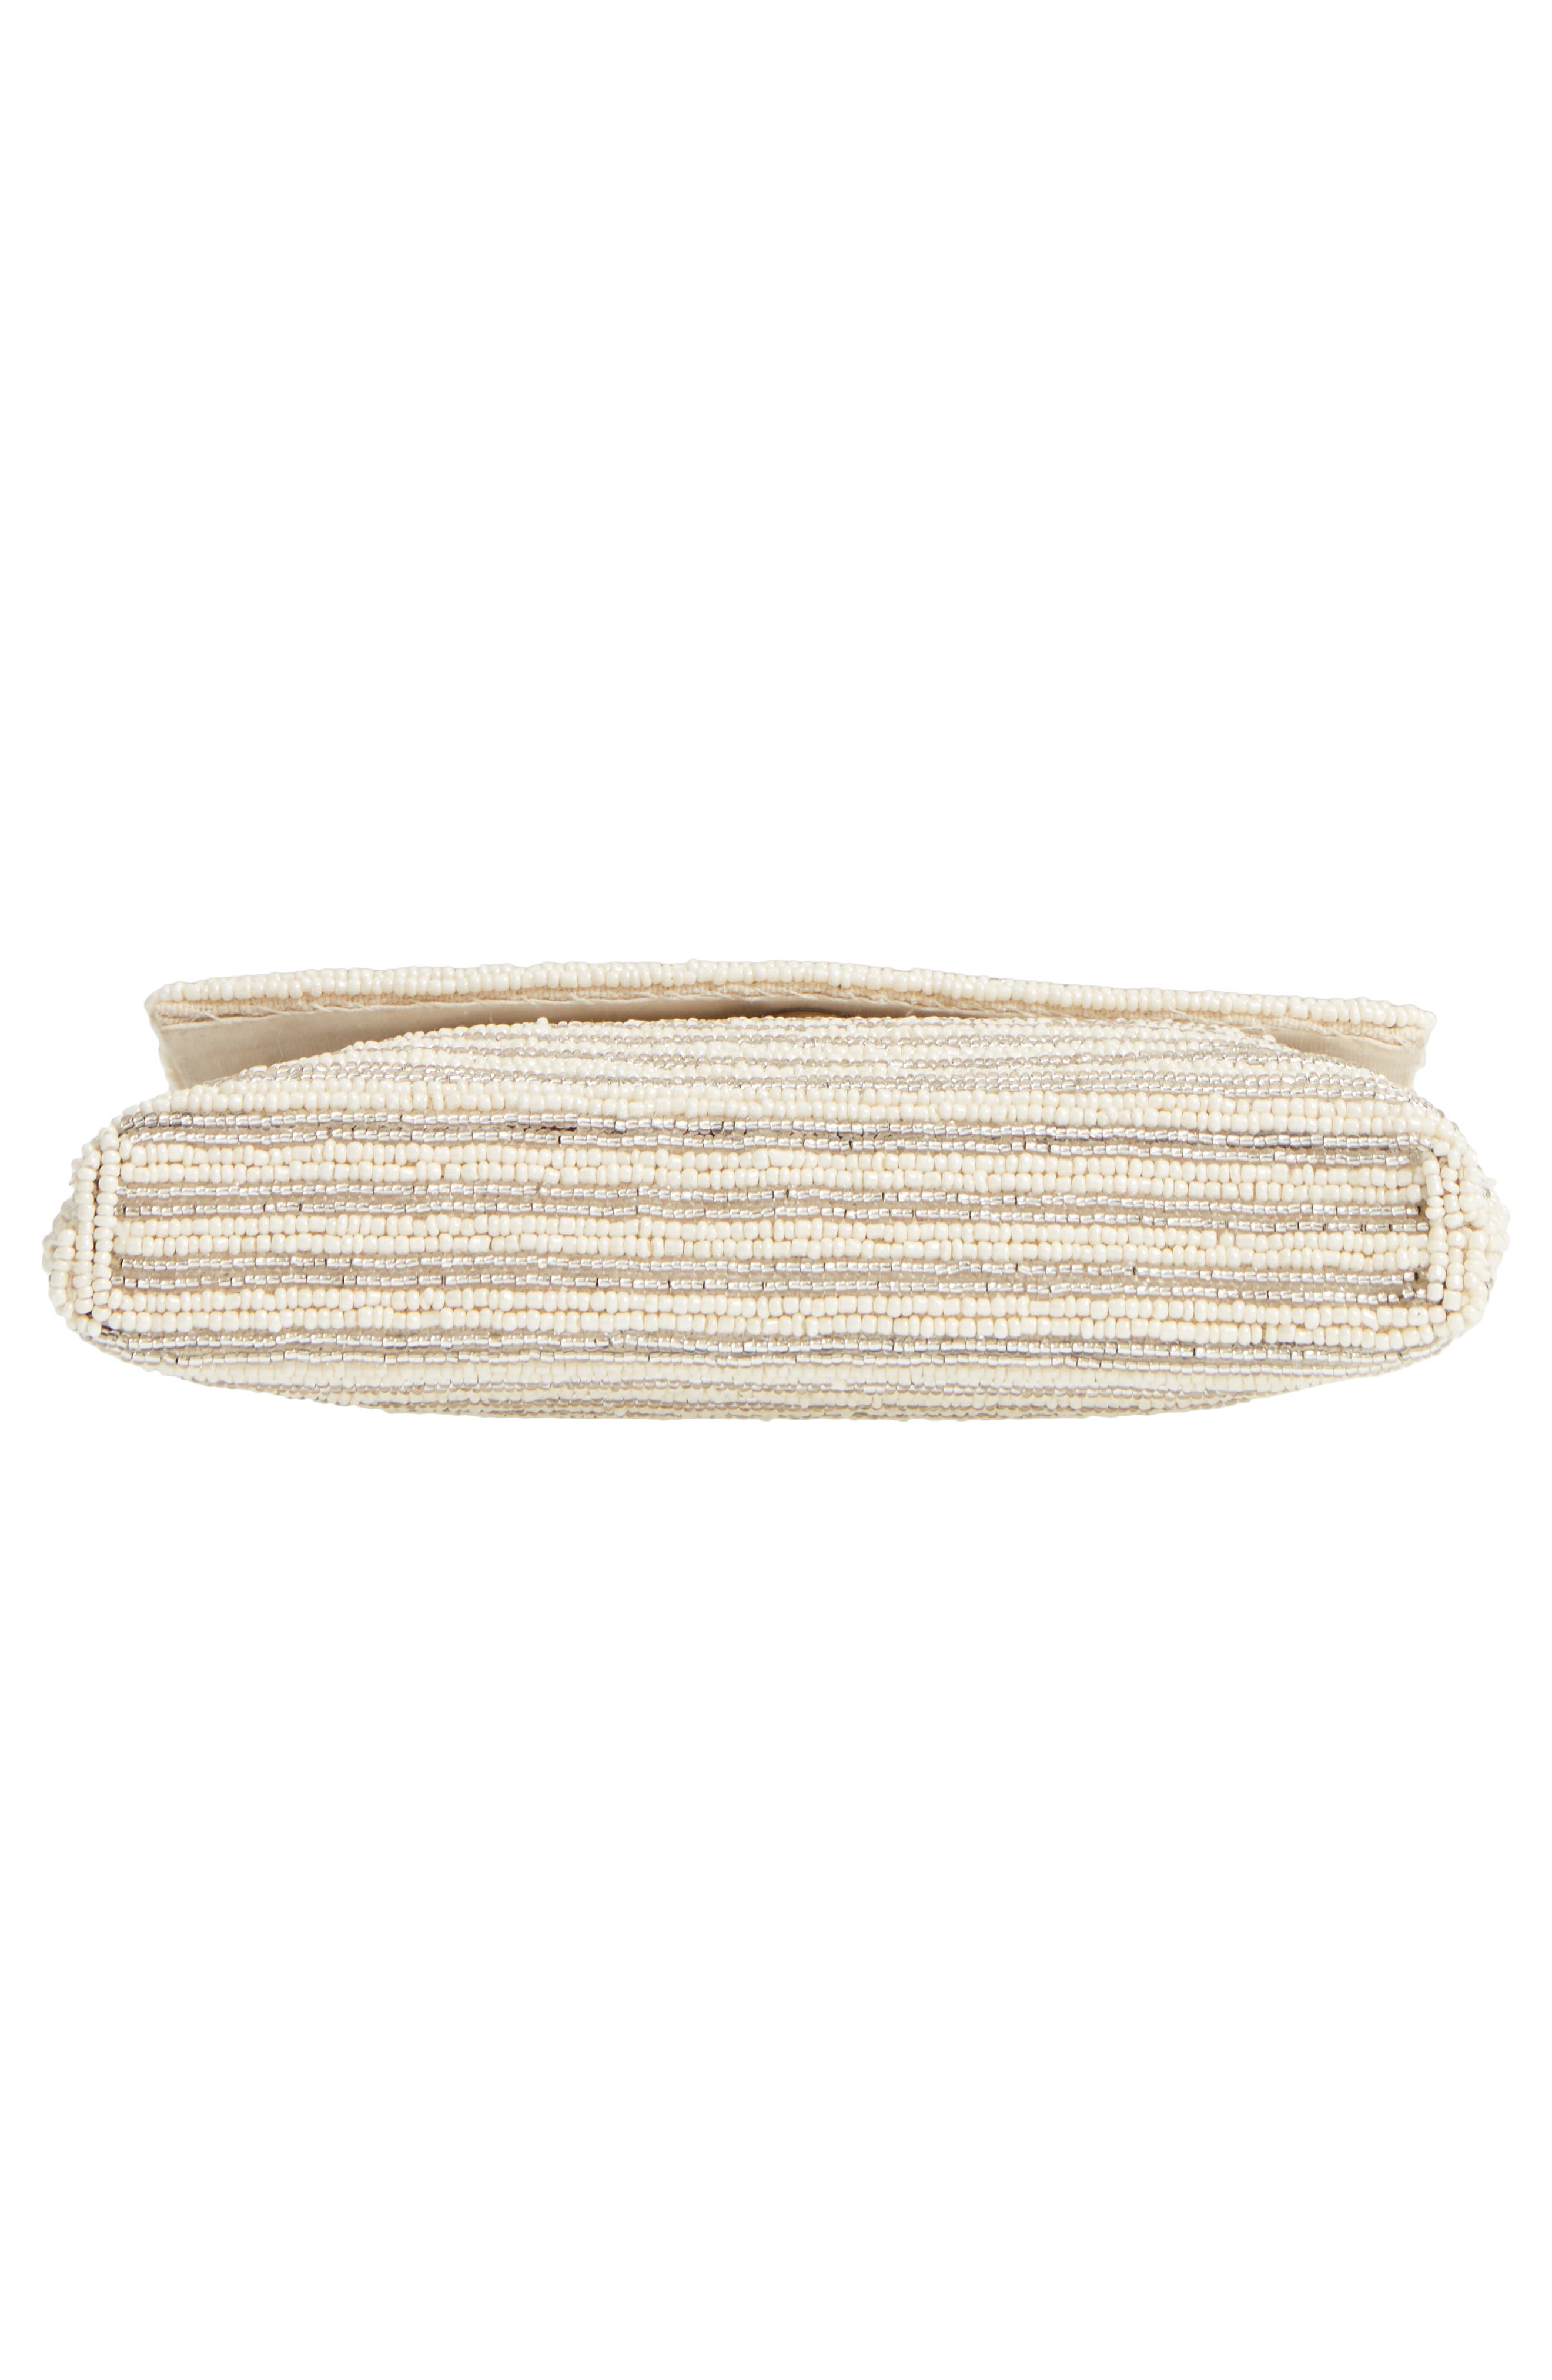 Beaded Clutch,                             Alternate thumbnail 6, color,                             900